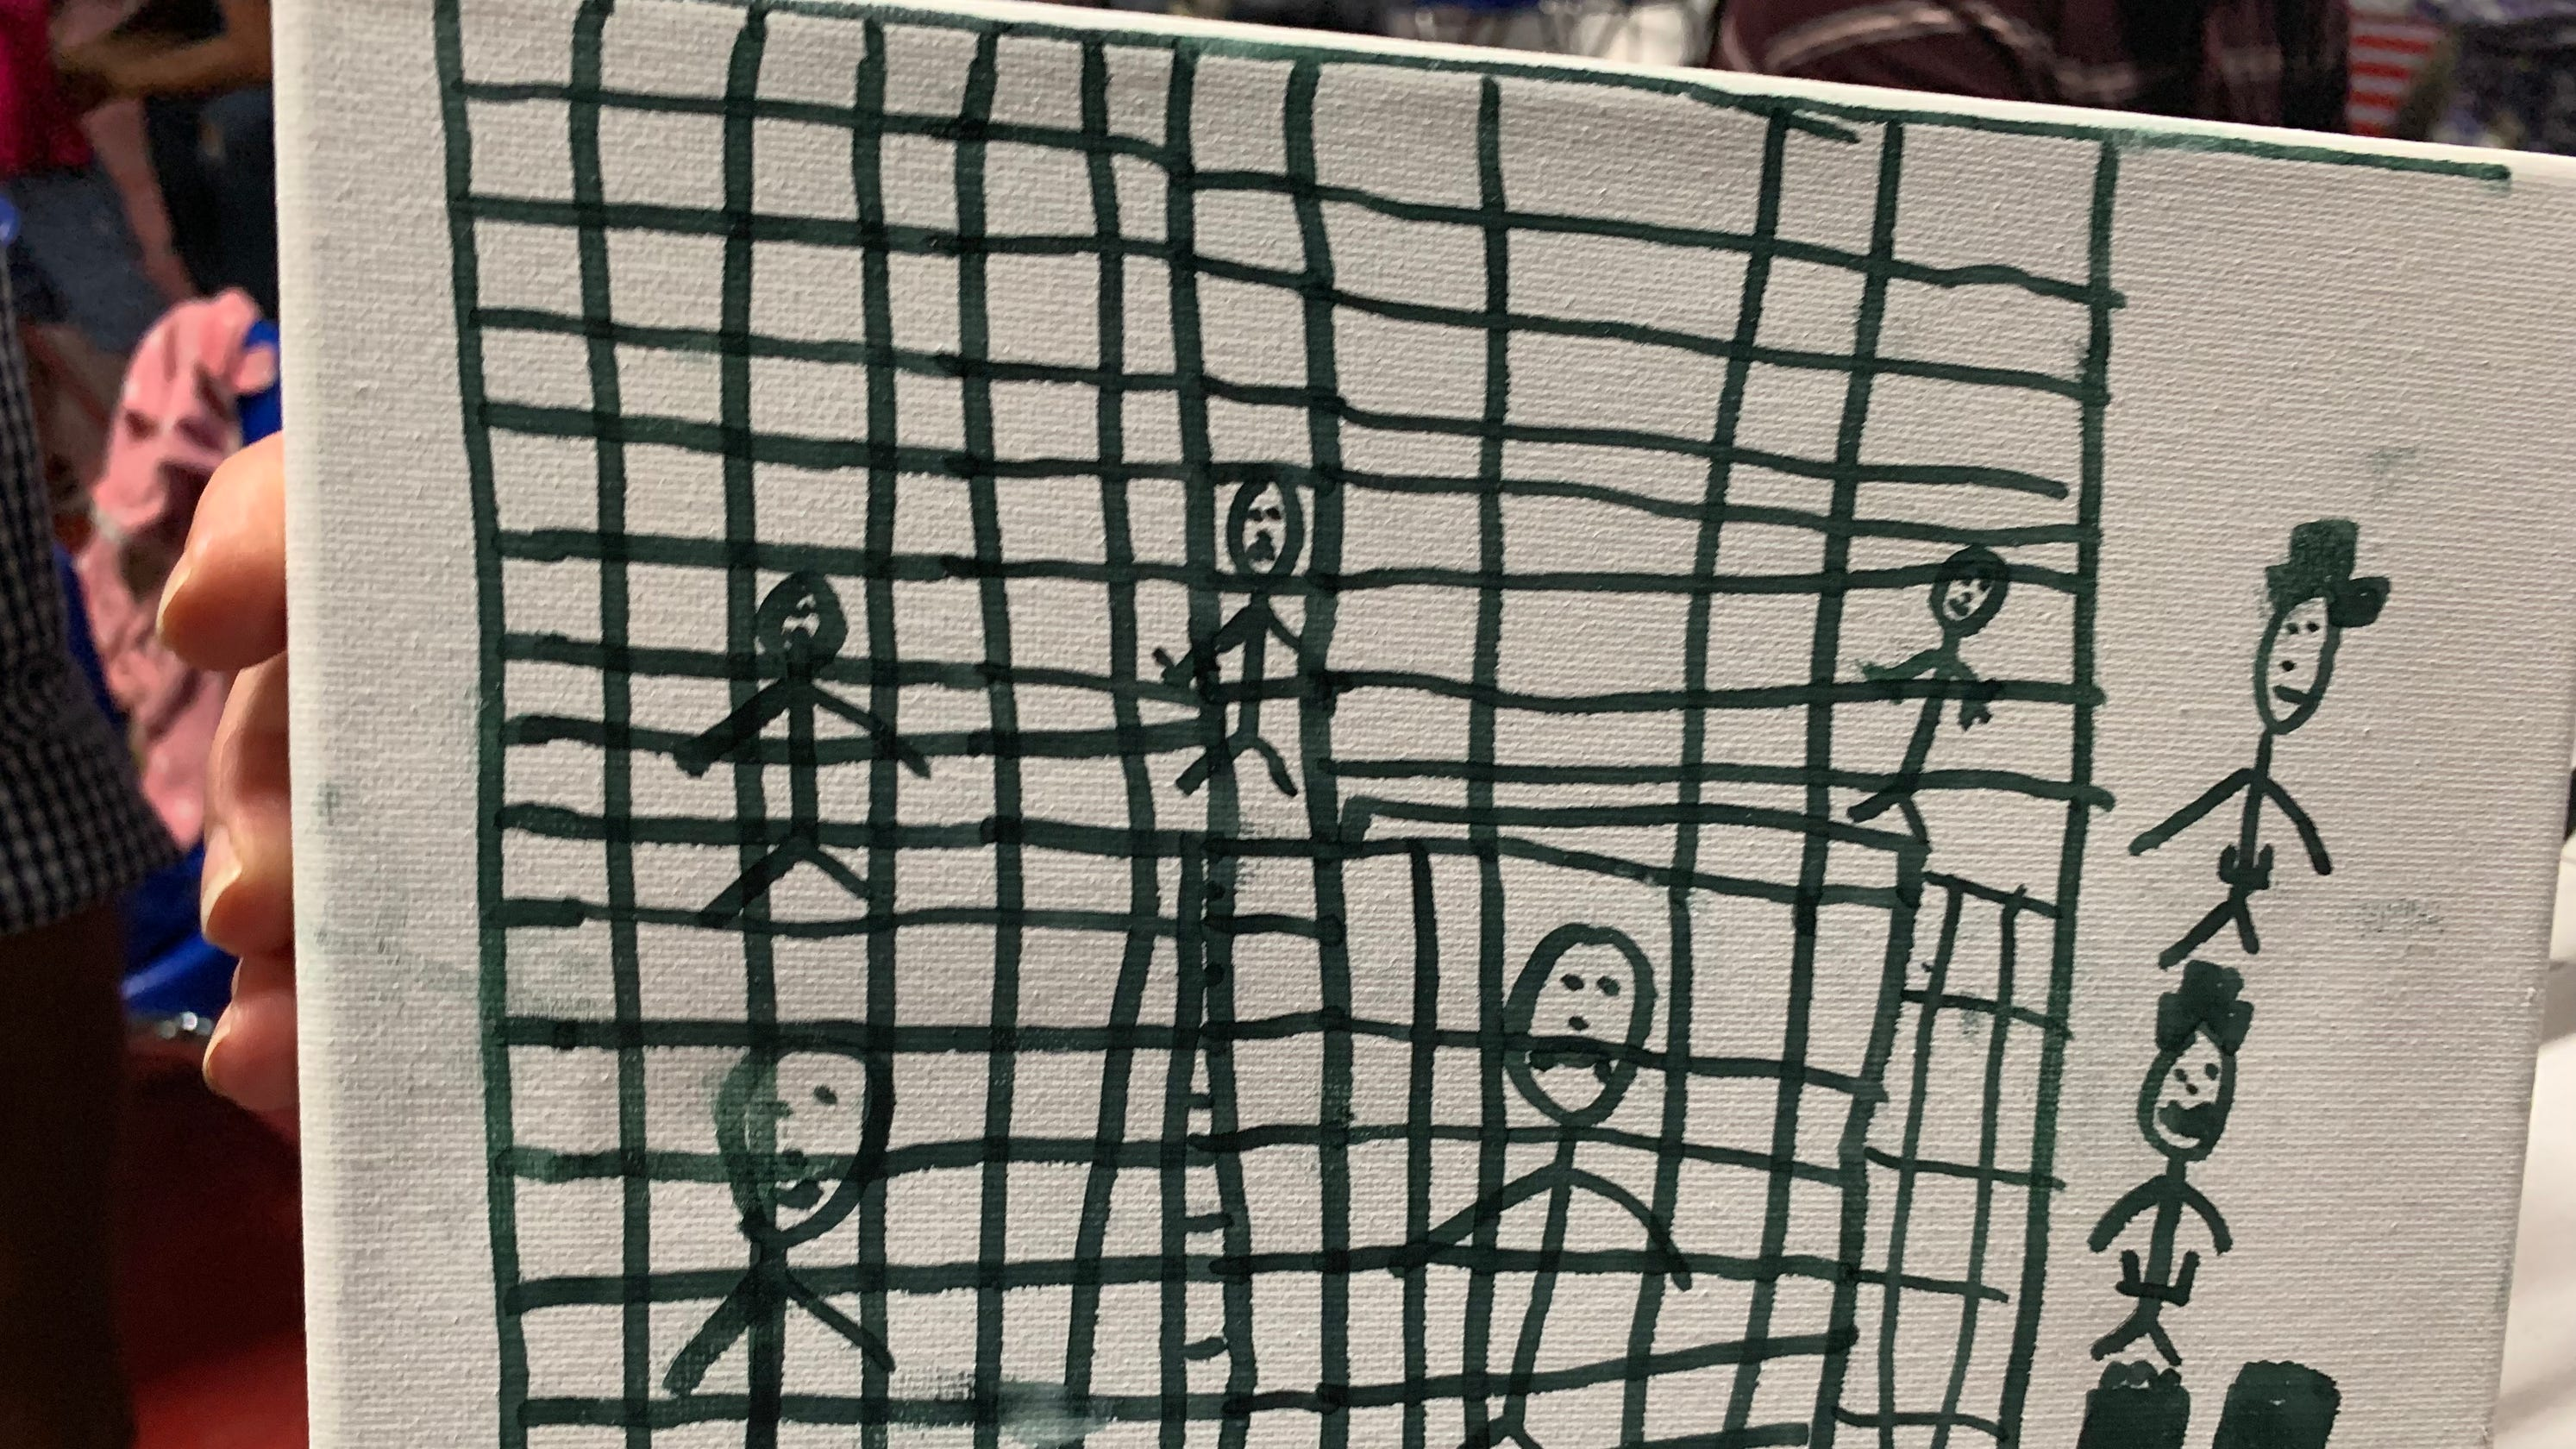 Doctors share migrant children's haunting drawings: 'These children coming into our country need a voice'